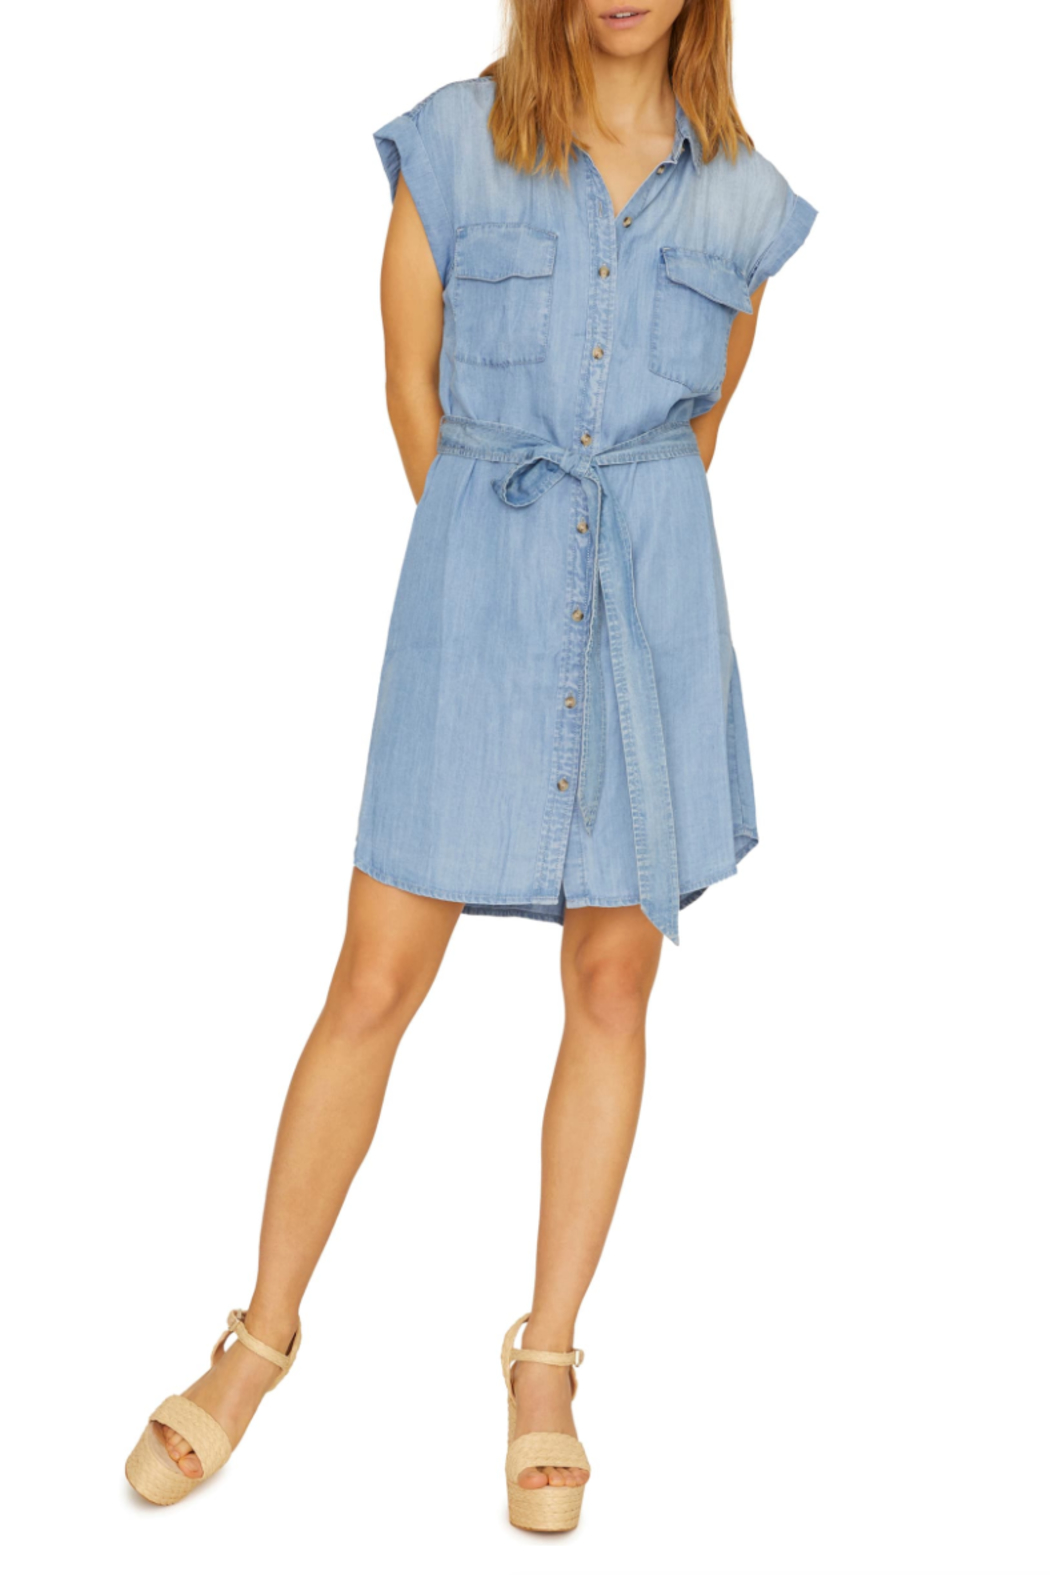 Sanctuary Dusty Denim Dress - Main Image